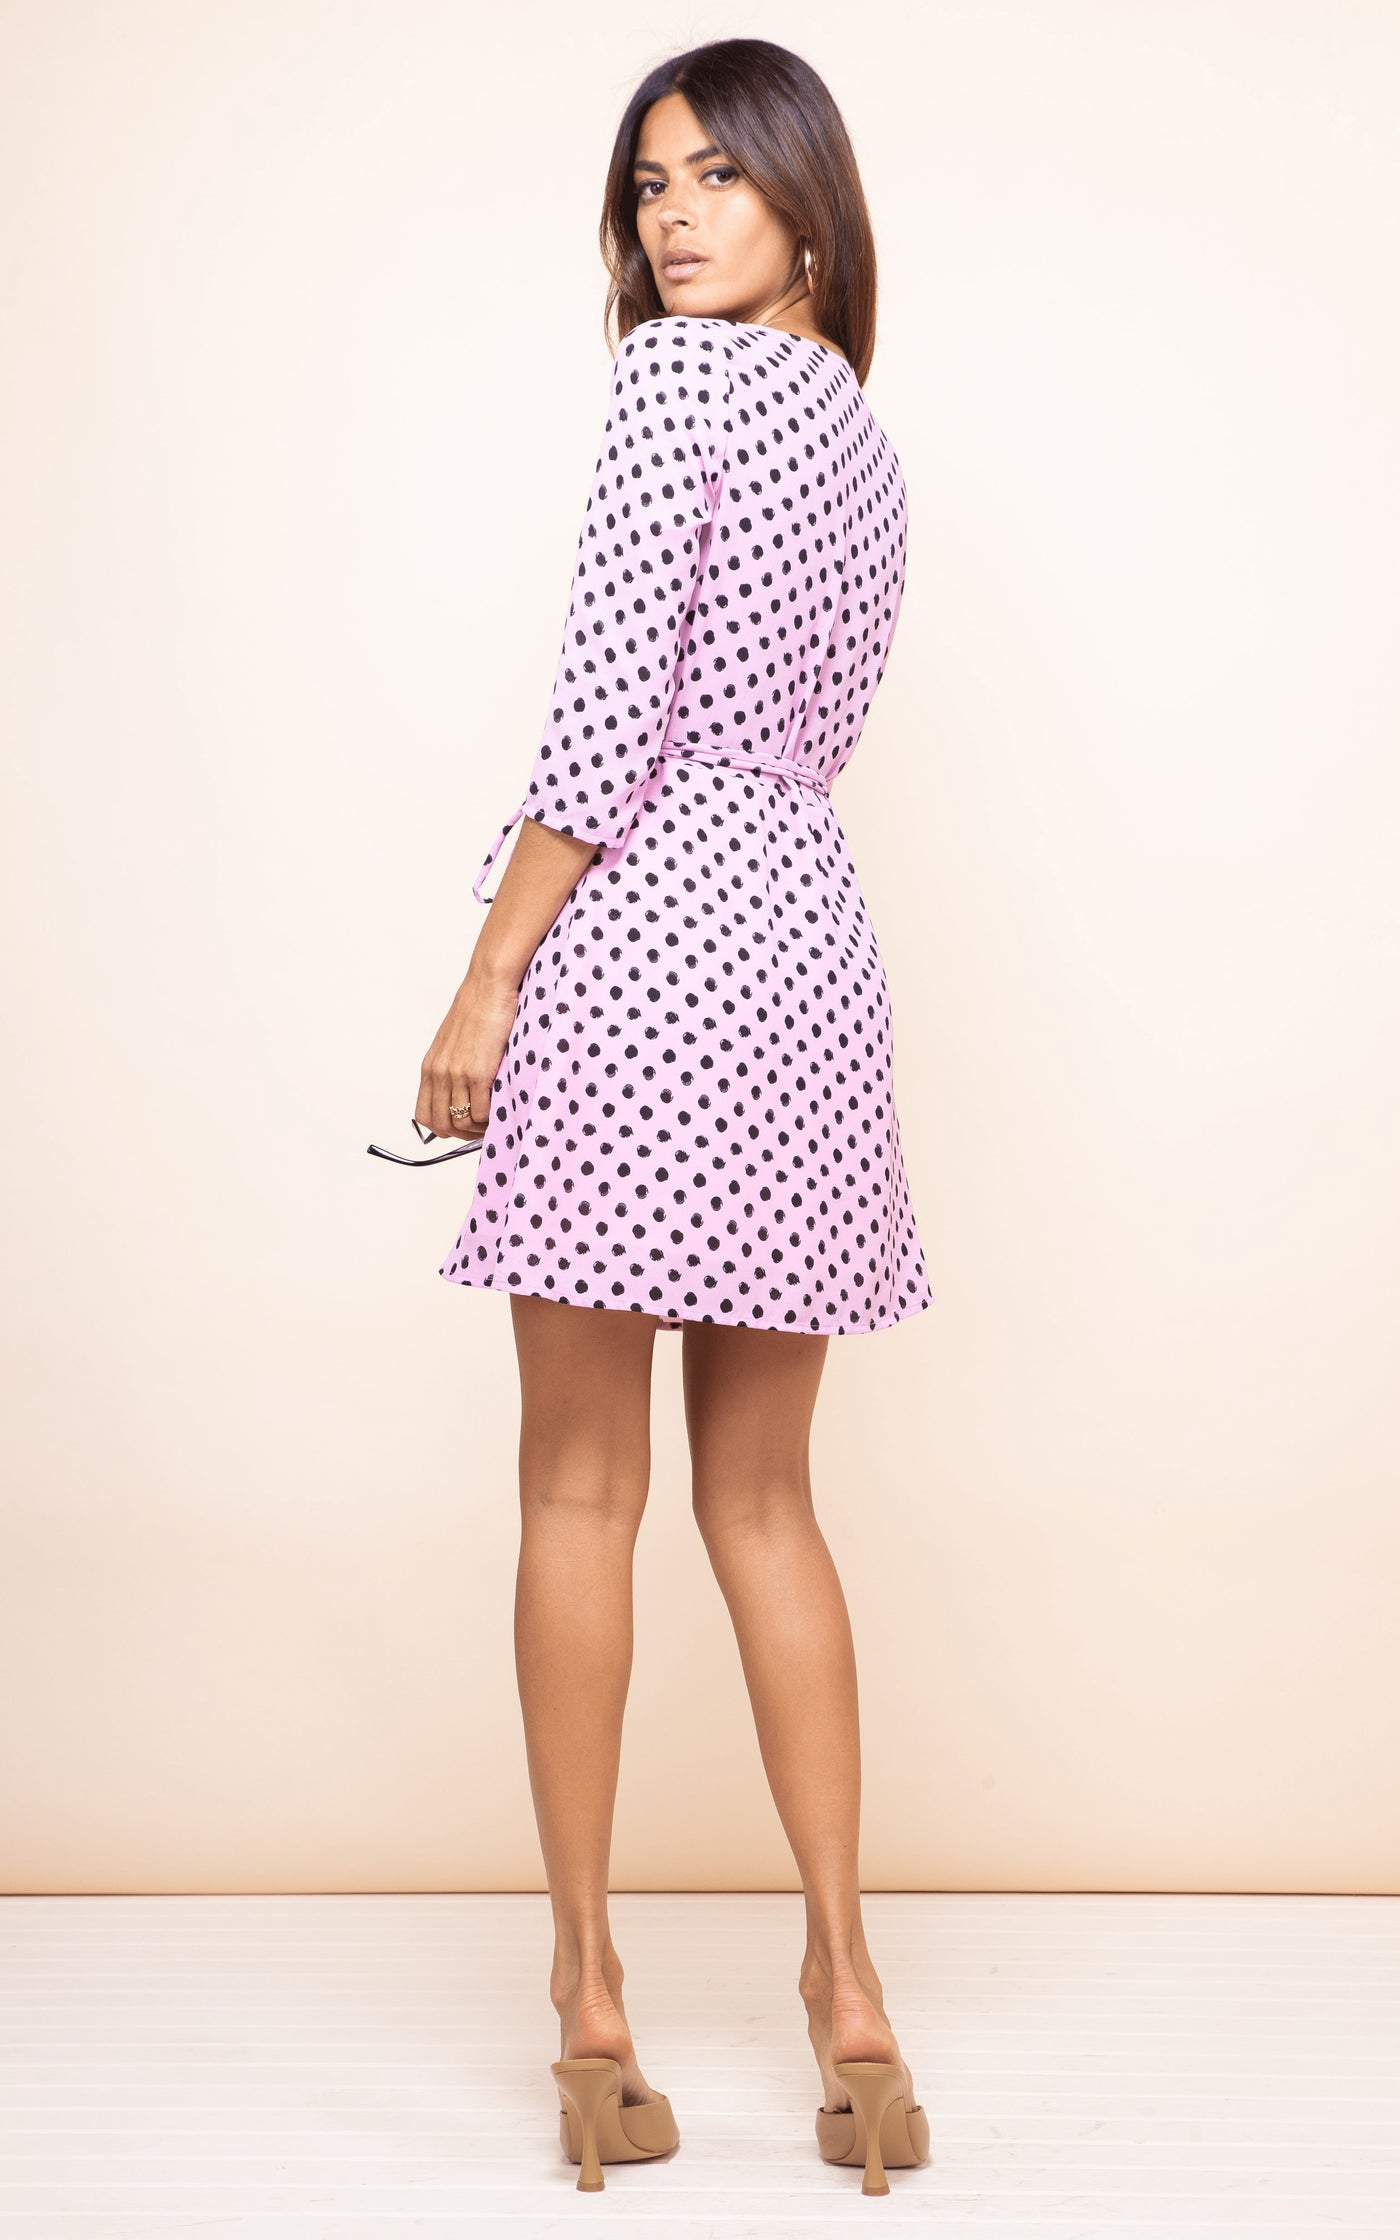 Dancing Leopard model faces backwards and looks over shoulder wearing Teagan Dress in pink dotty print